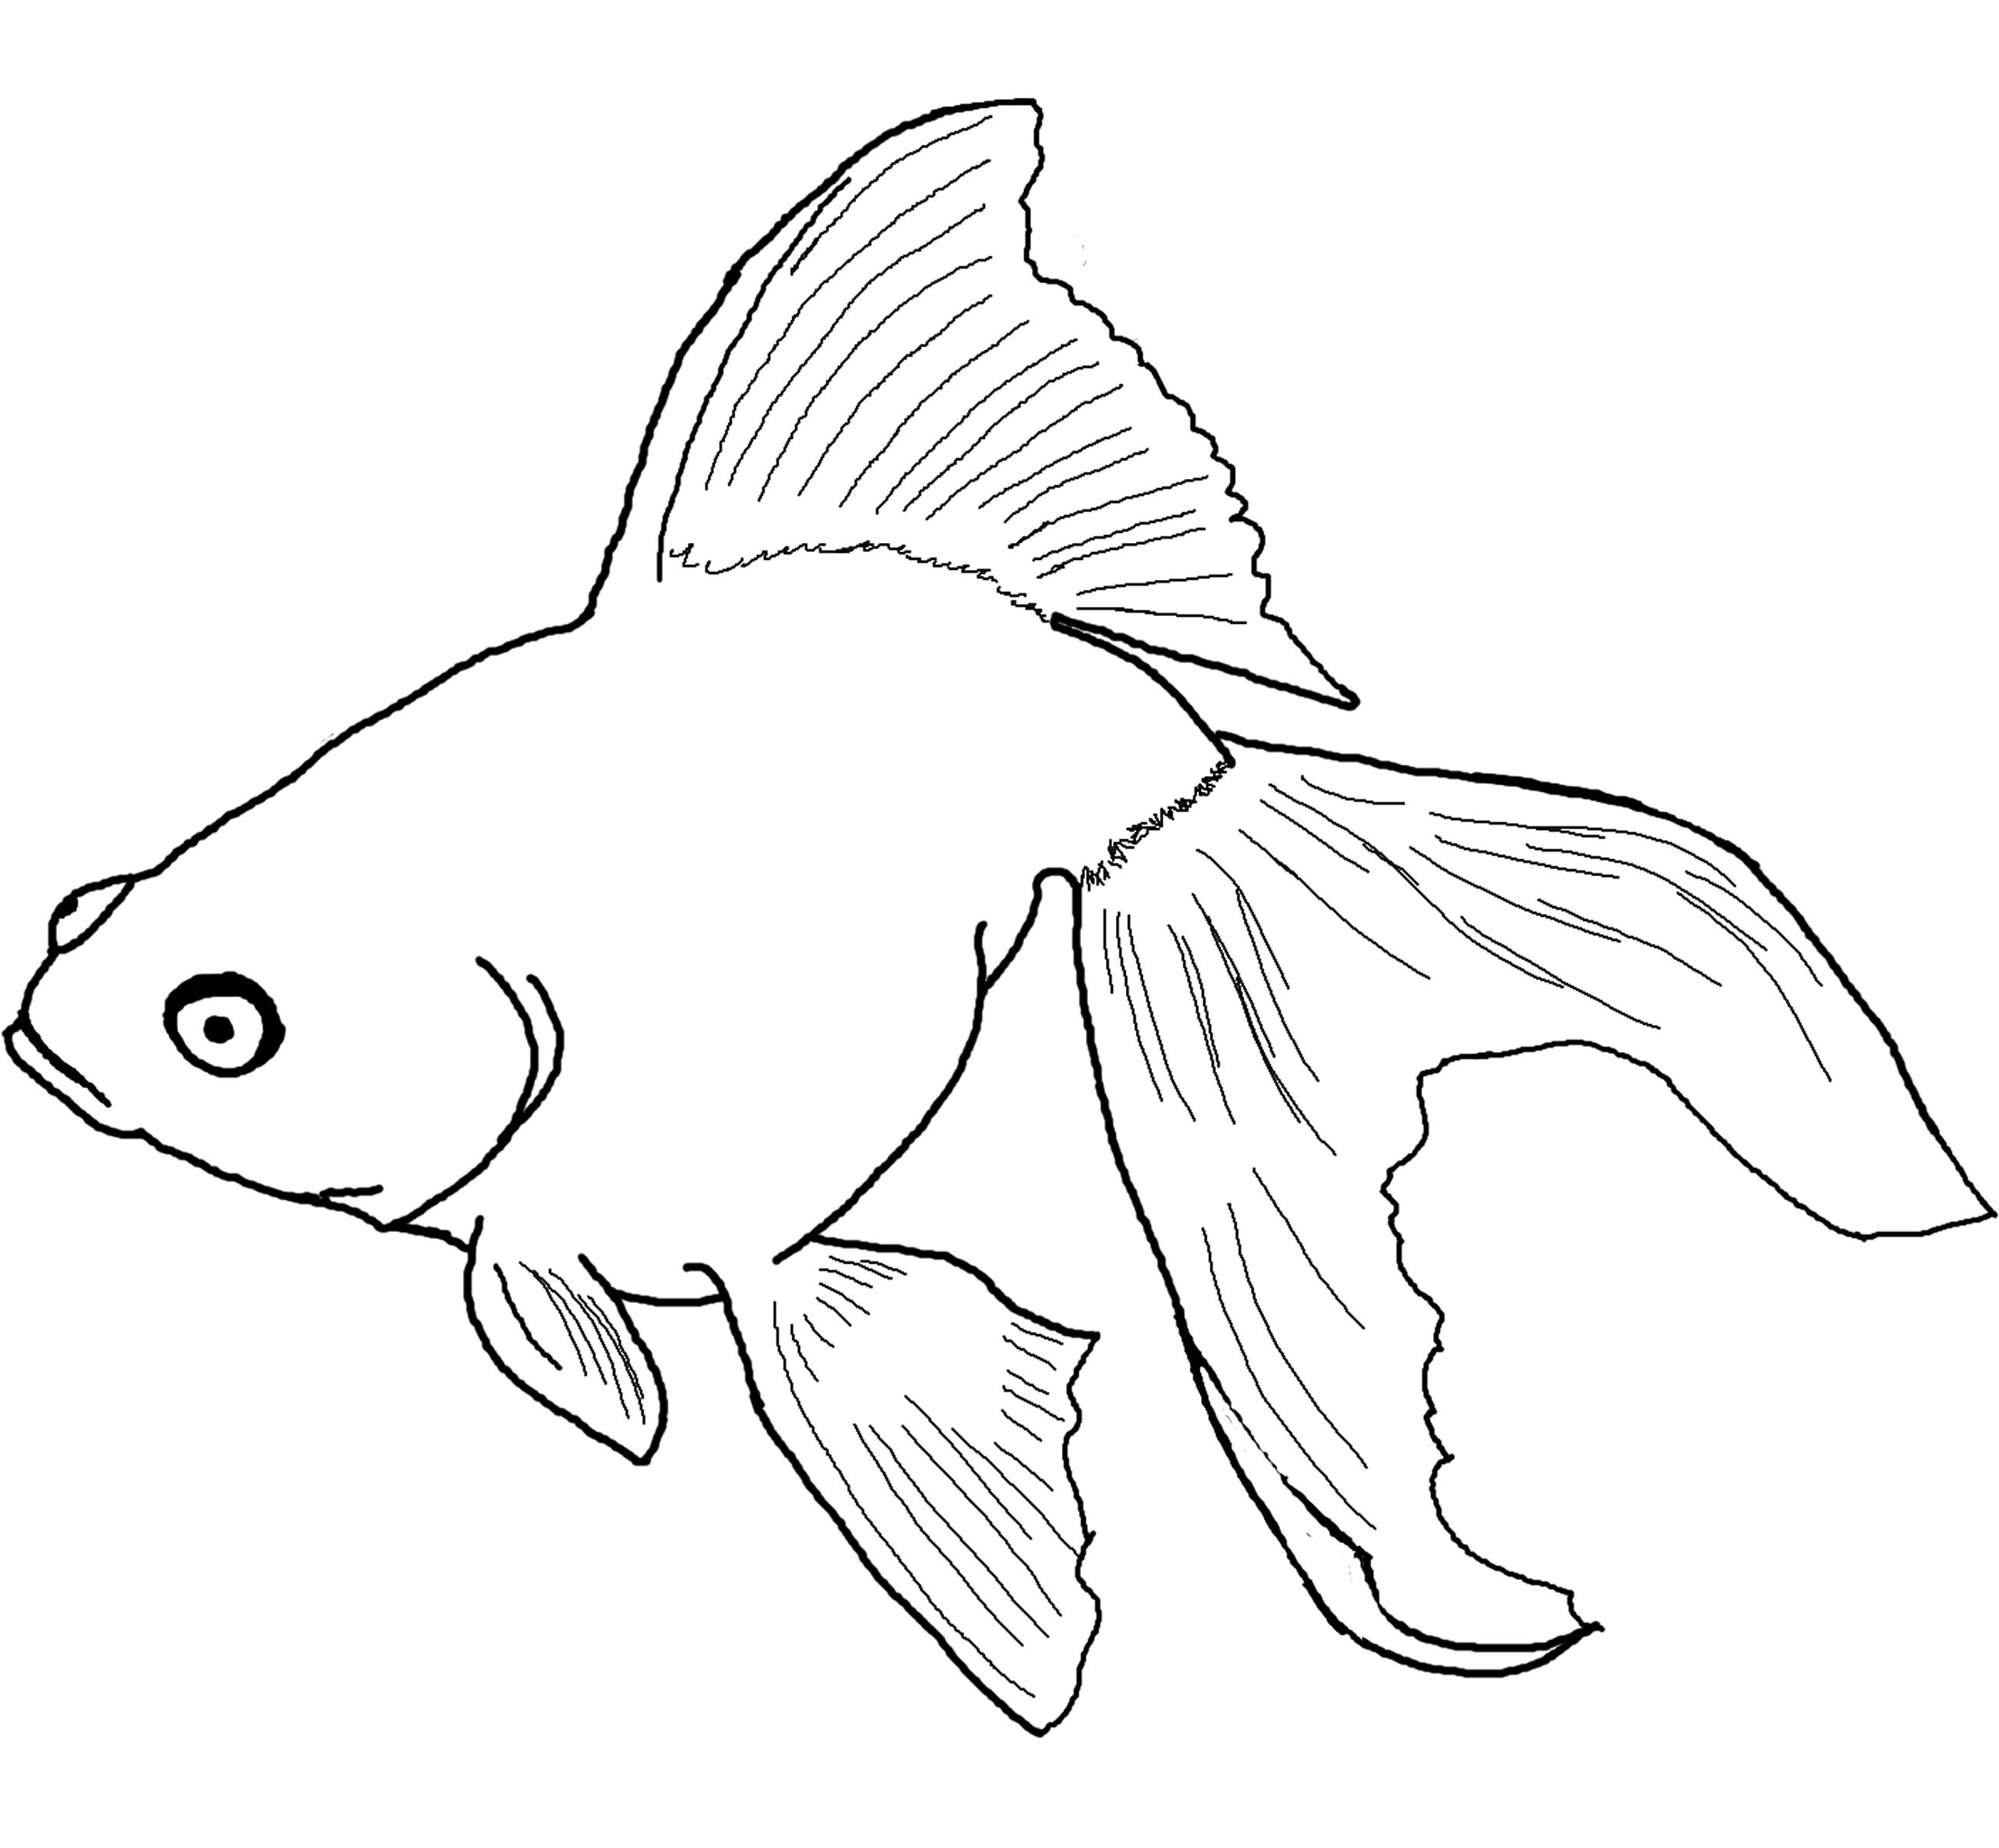 Printable coloring pages rainbow fish - Fish Coloring Pages For Kids To Print